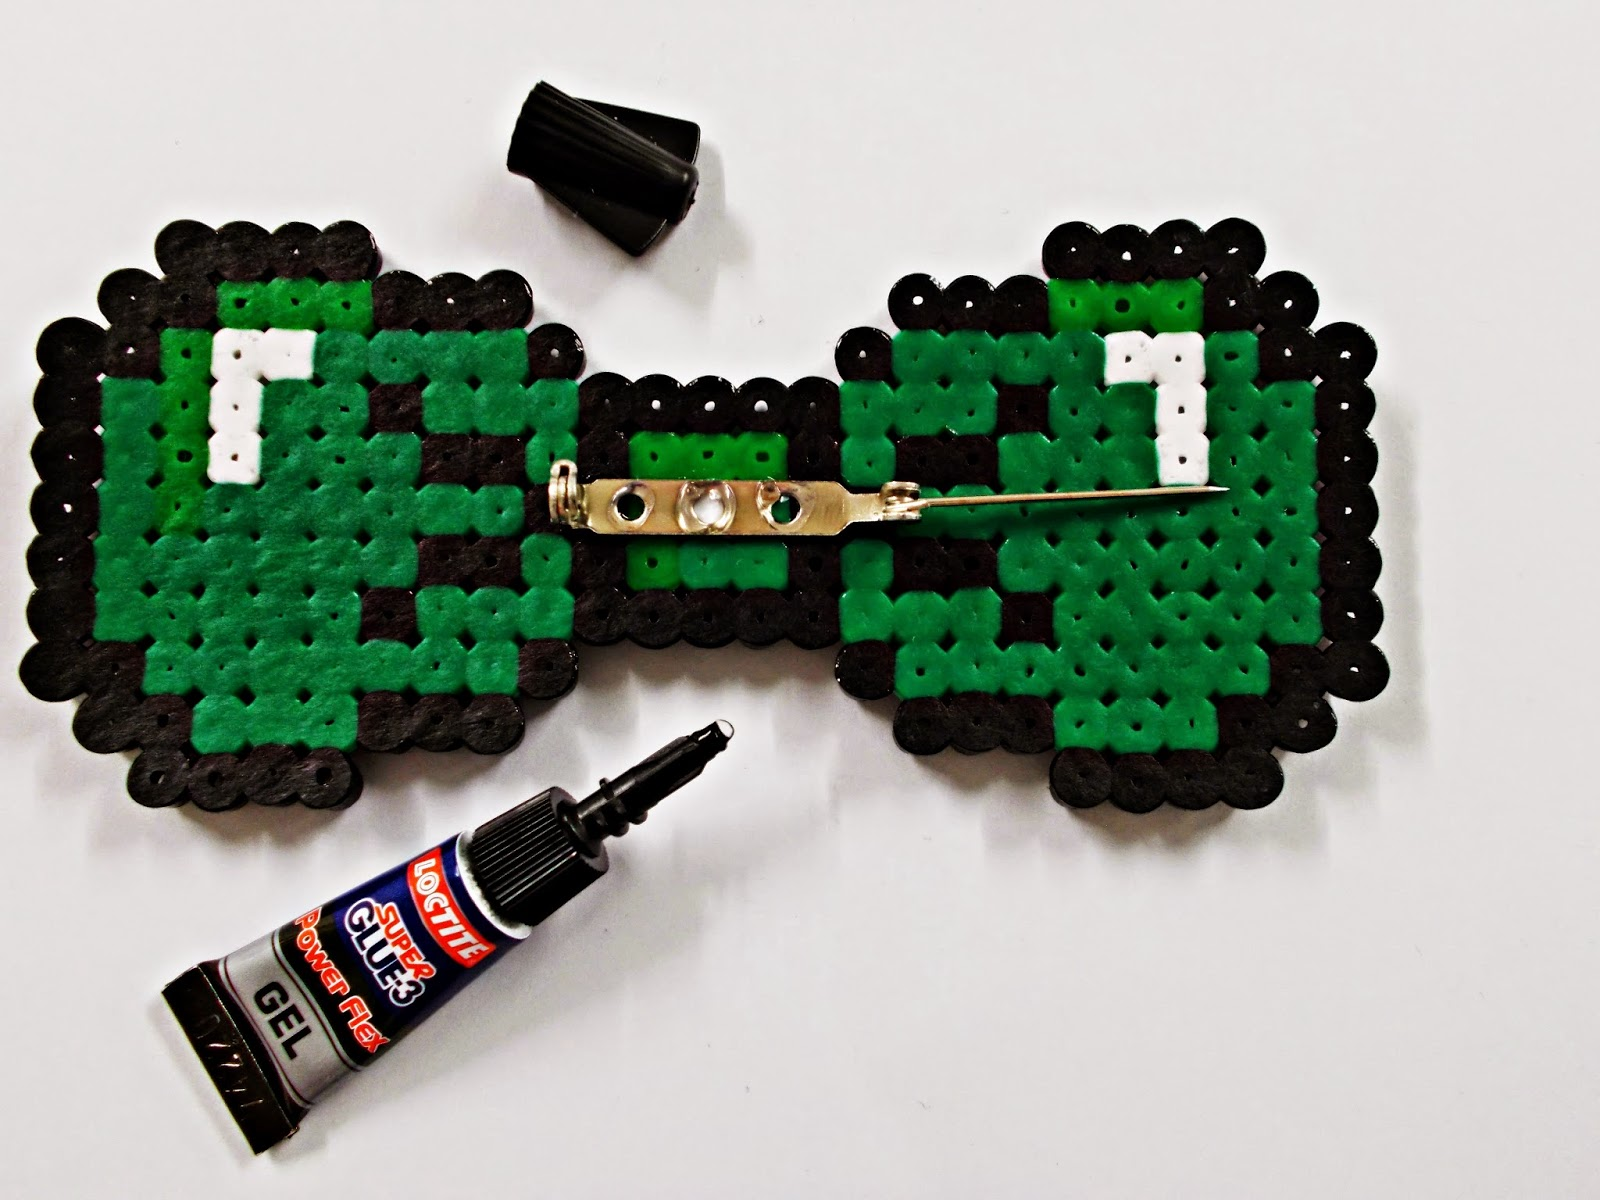 DIY-pajarita-tie bow-hama beads- DoItYourself-idea-moda-broche-5